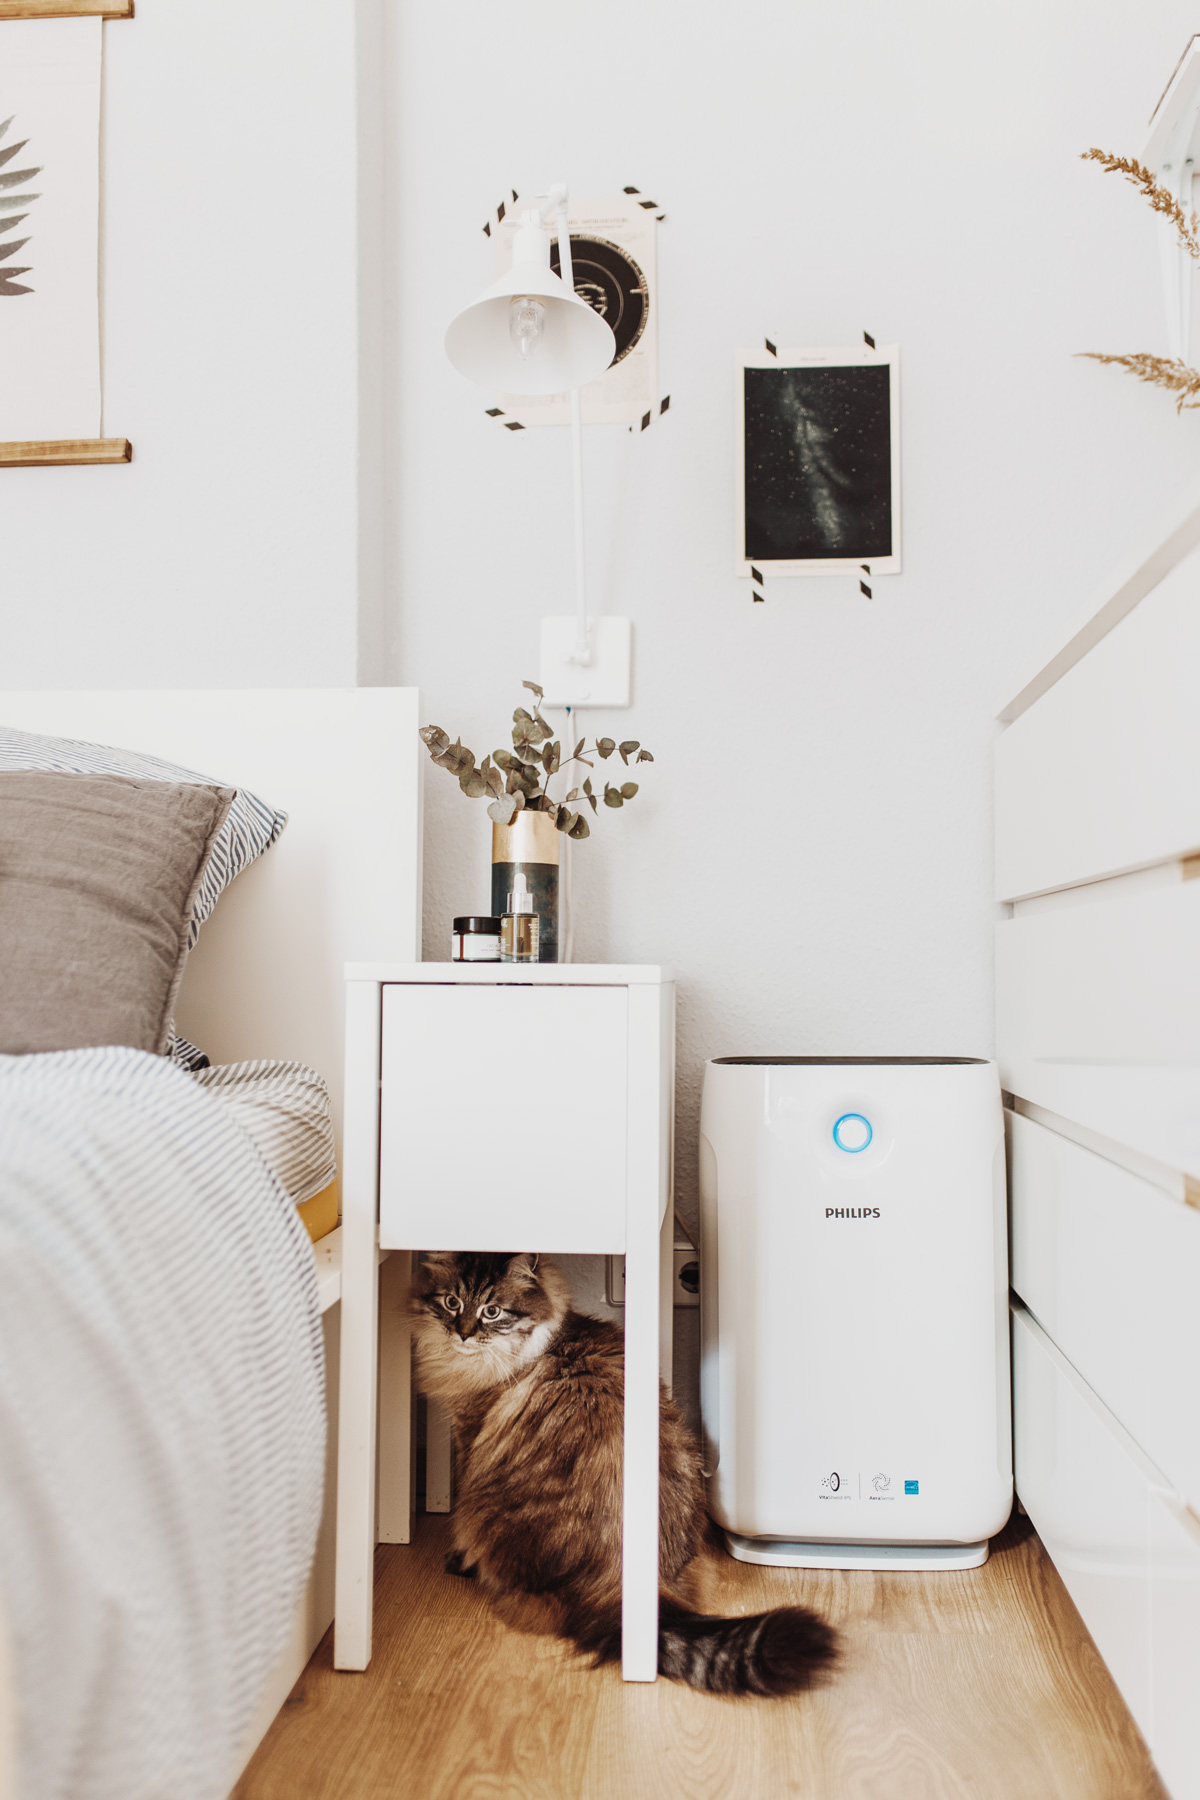 einmal tief durchatmen bitte bekleidet fashionblog travelblog interiorblog germany. Black Bedroom Furniture Sets. Home Design Ideas